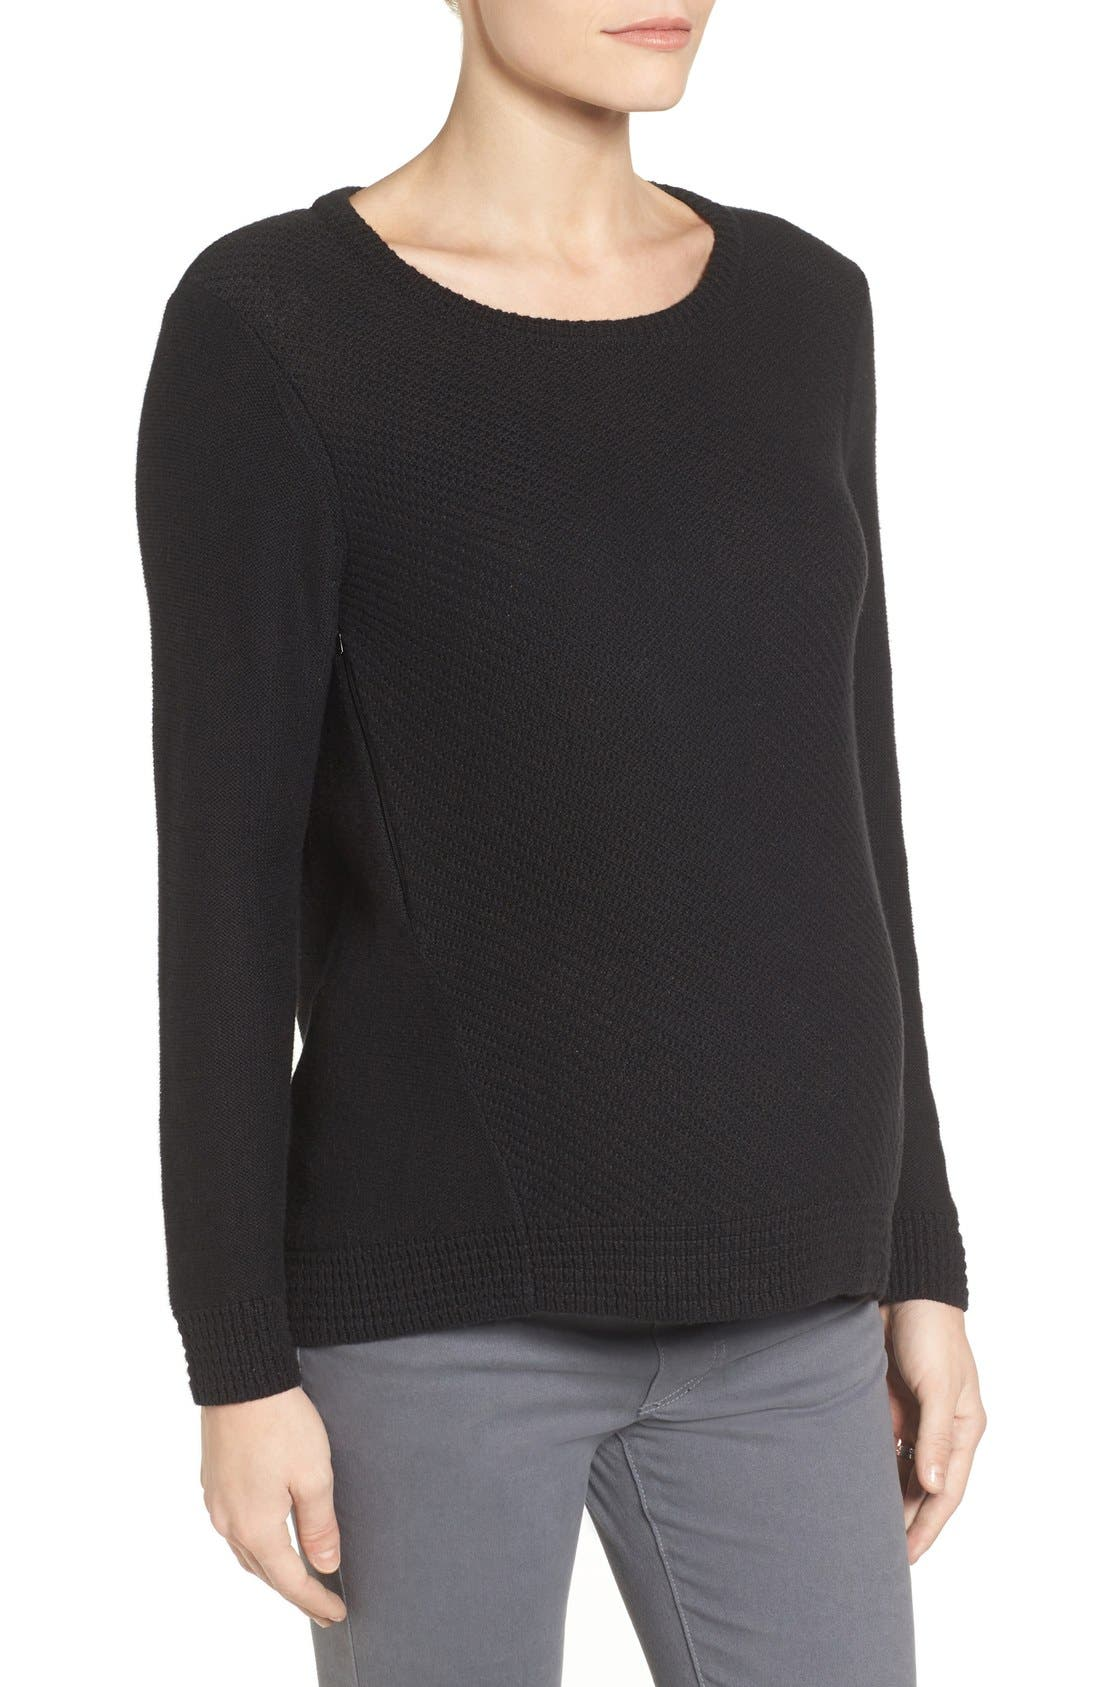 Wiley Maternity/Nursing Sweatshirt,                             Alternate thumbnail 8, color,                             BLACK